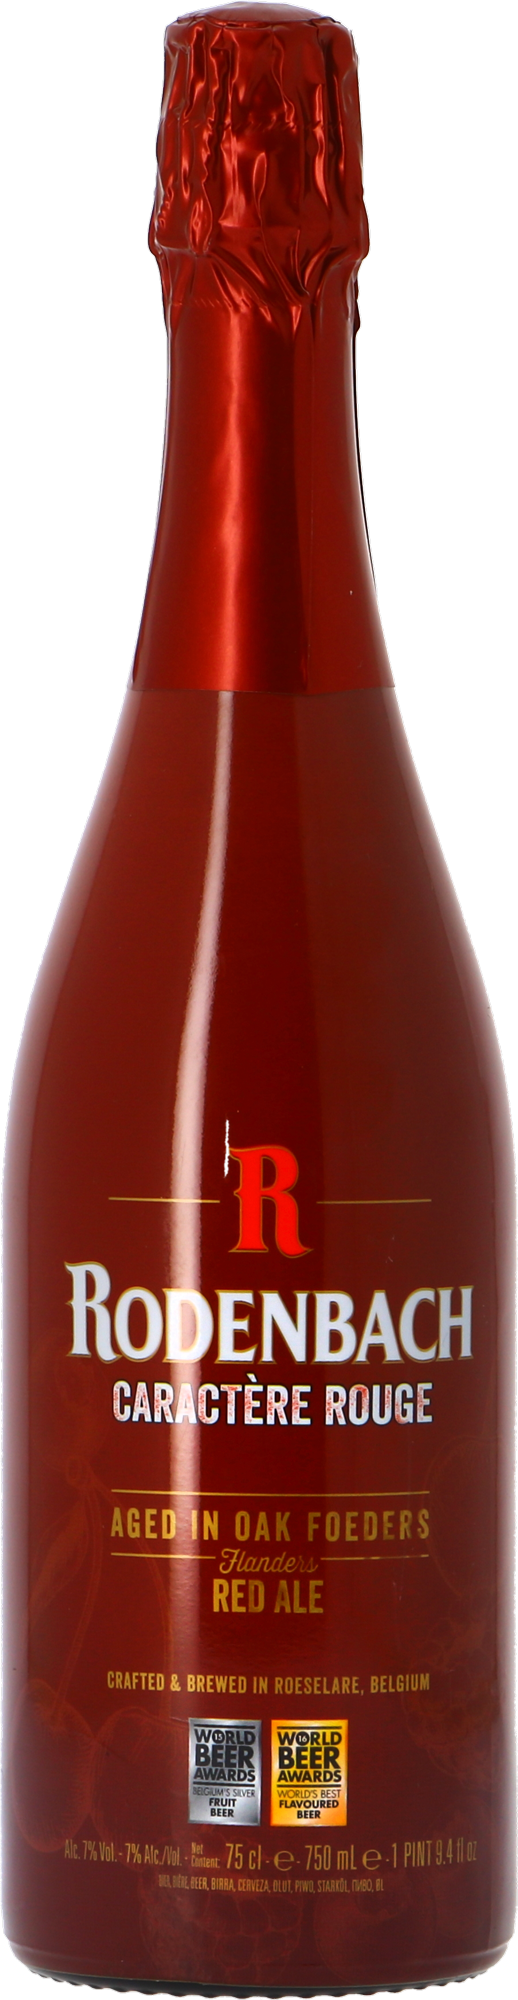 Rodenbach Caractère Rouge - Limited Edition